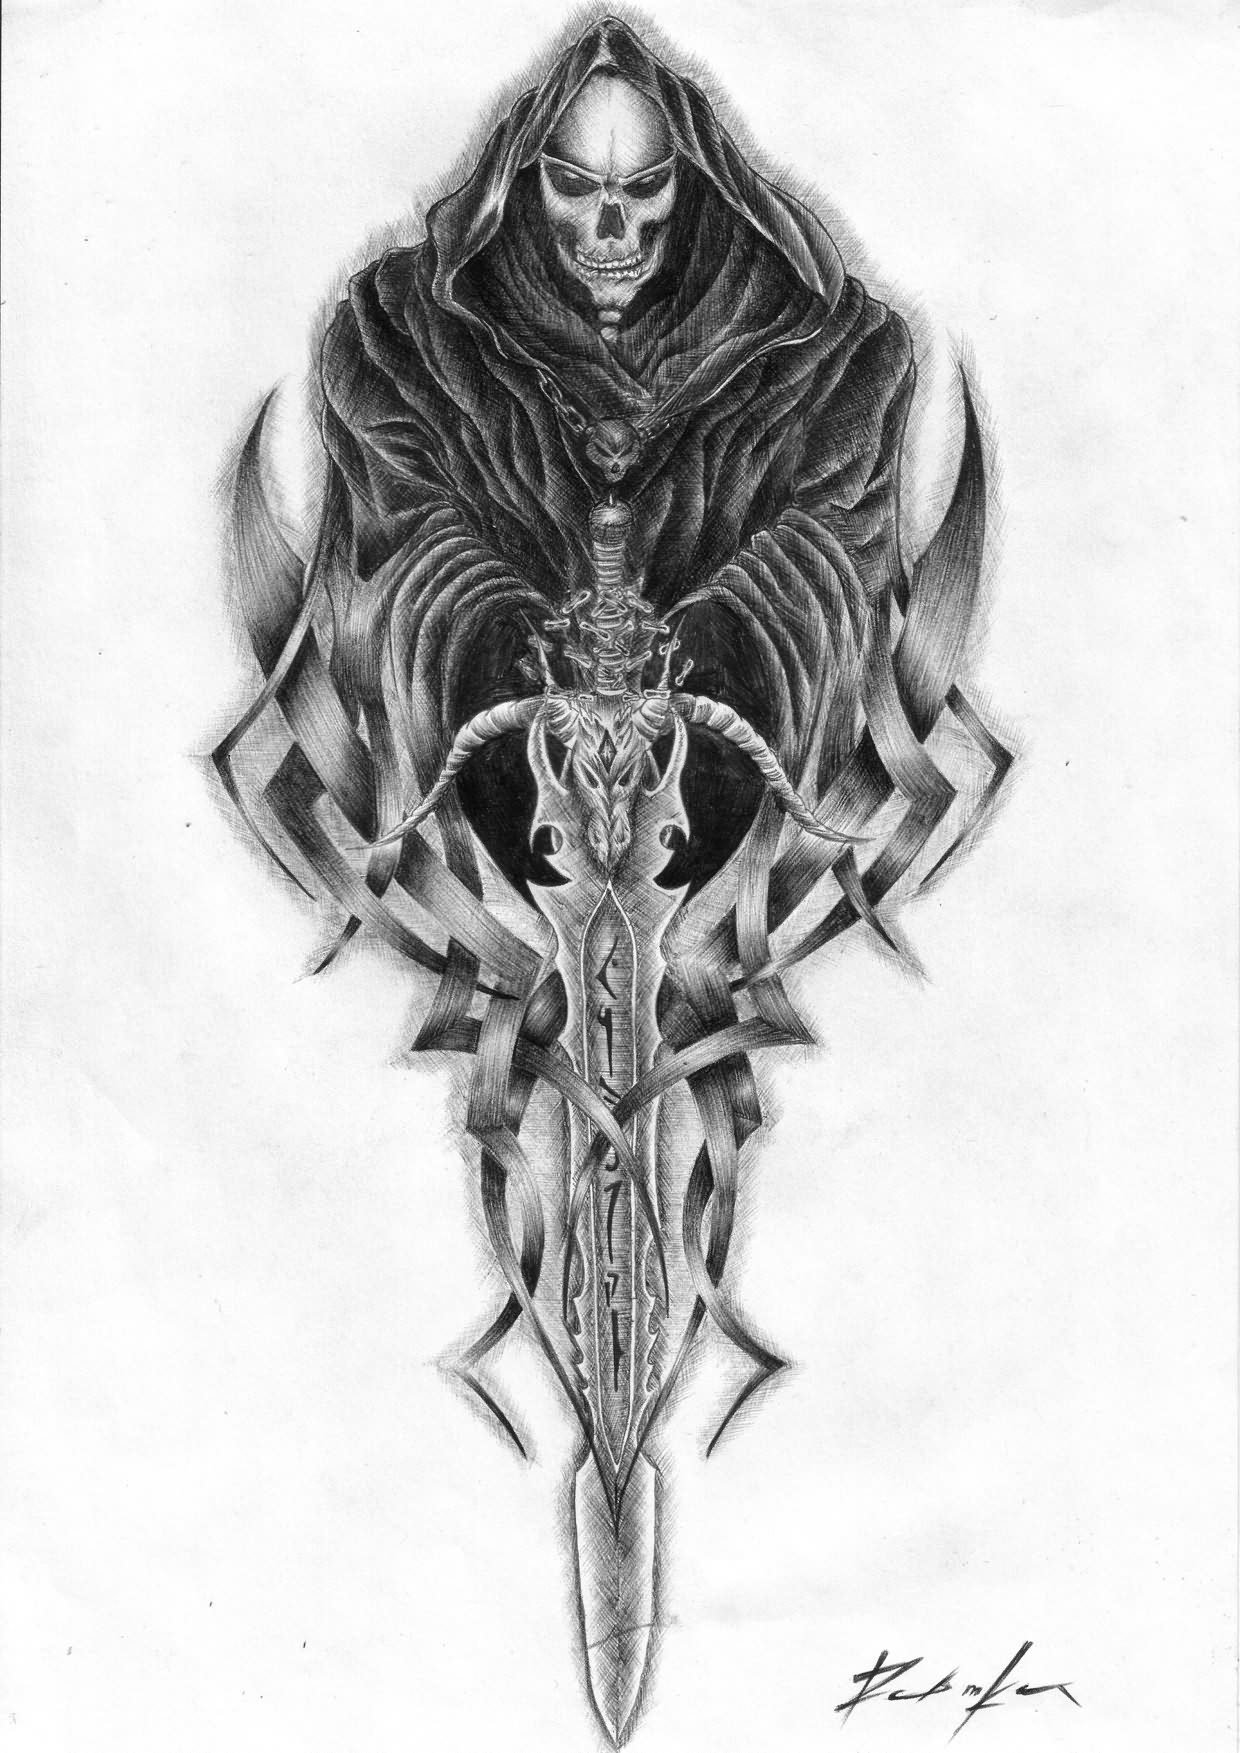 Black Ink Grim Reaper And Sword Tattoo On Paper